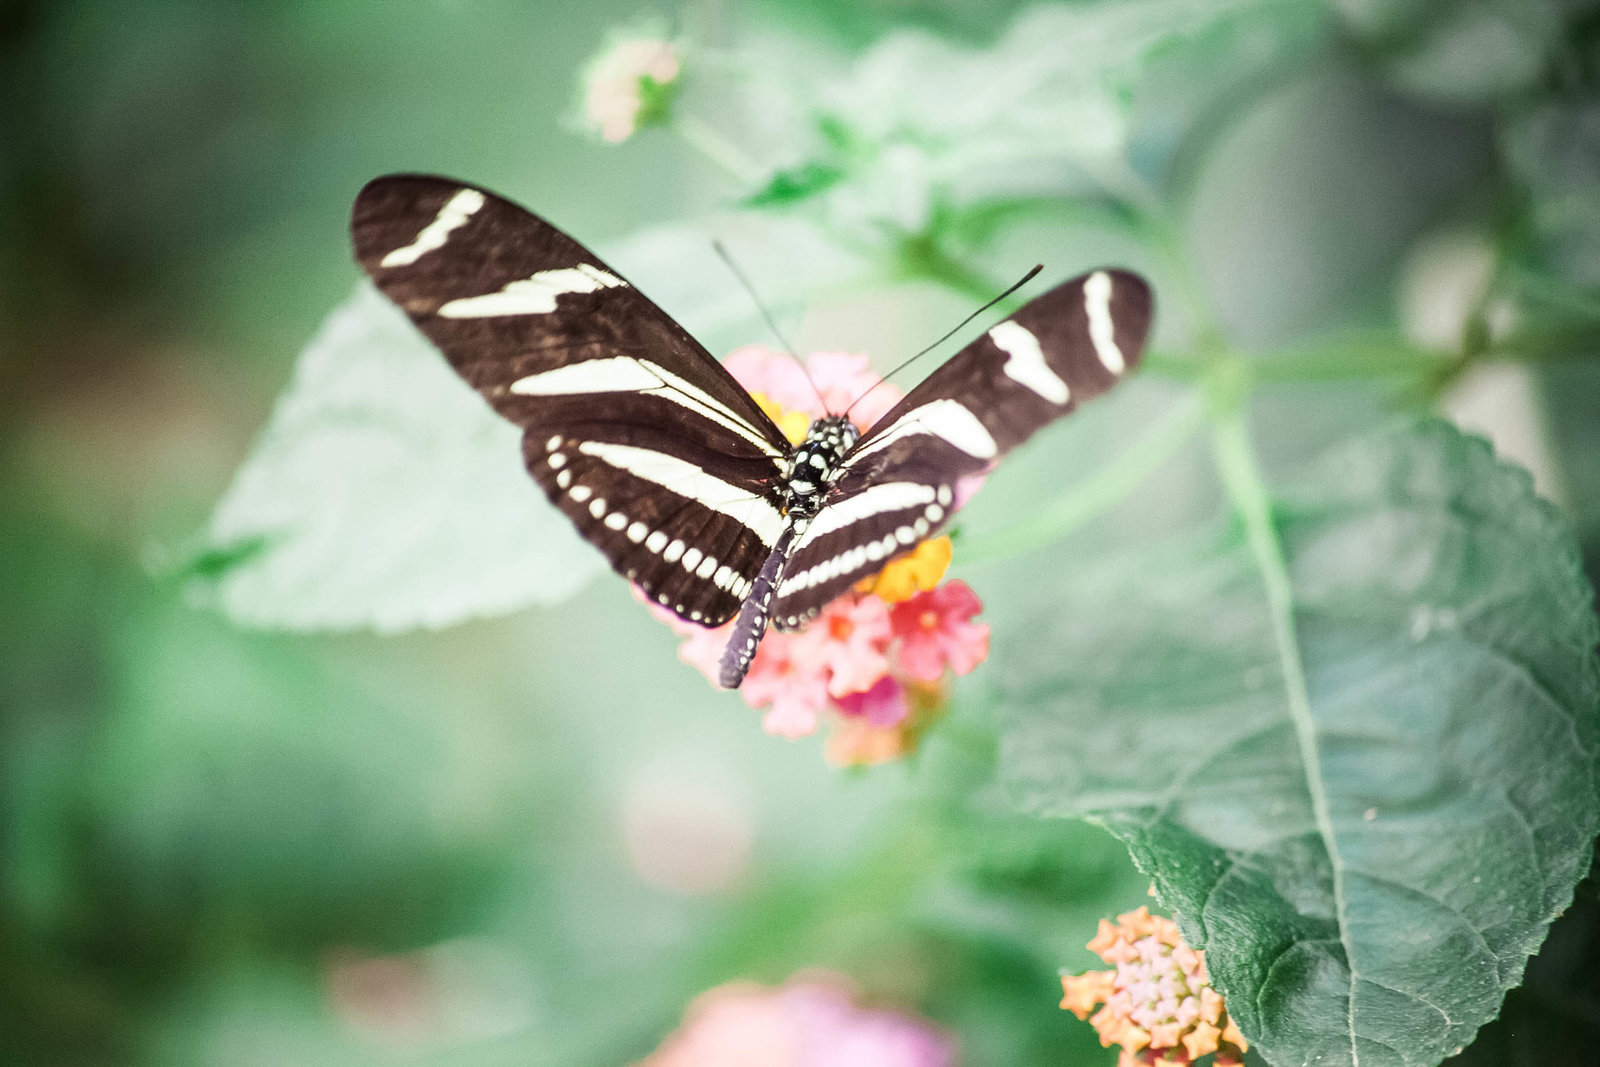 zebra-longwing-butterfly-travel-aruba-kate-timbers-photography-857